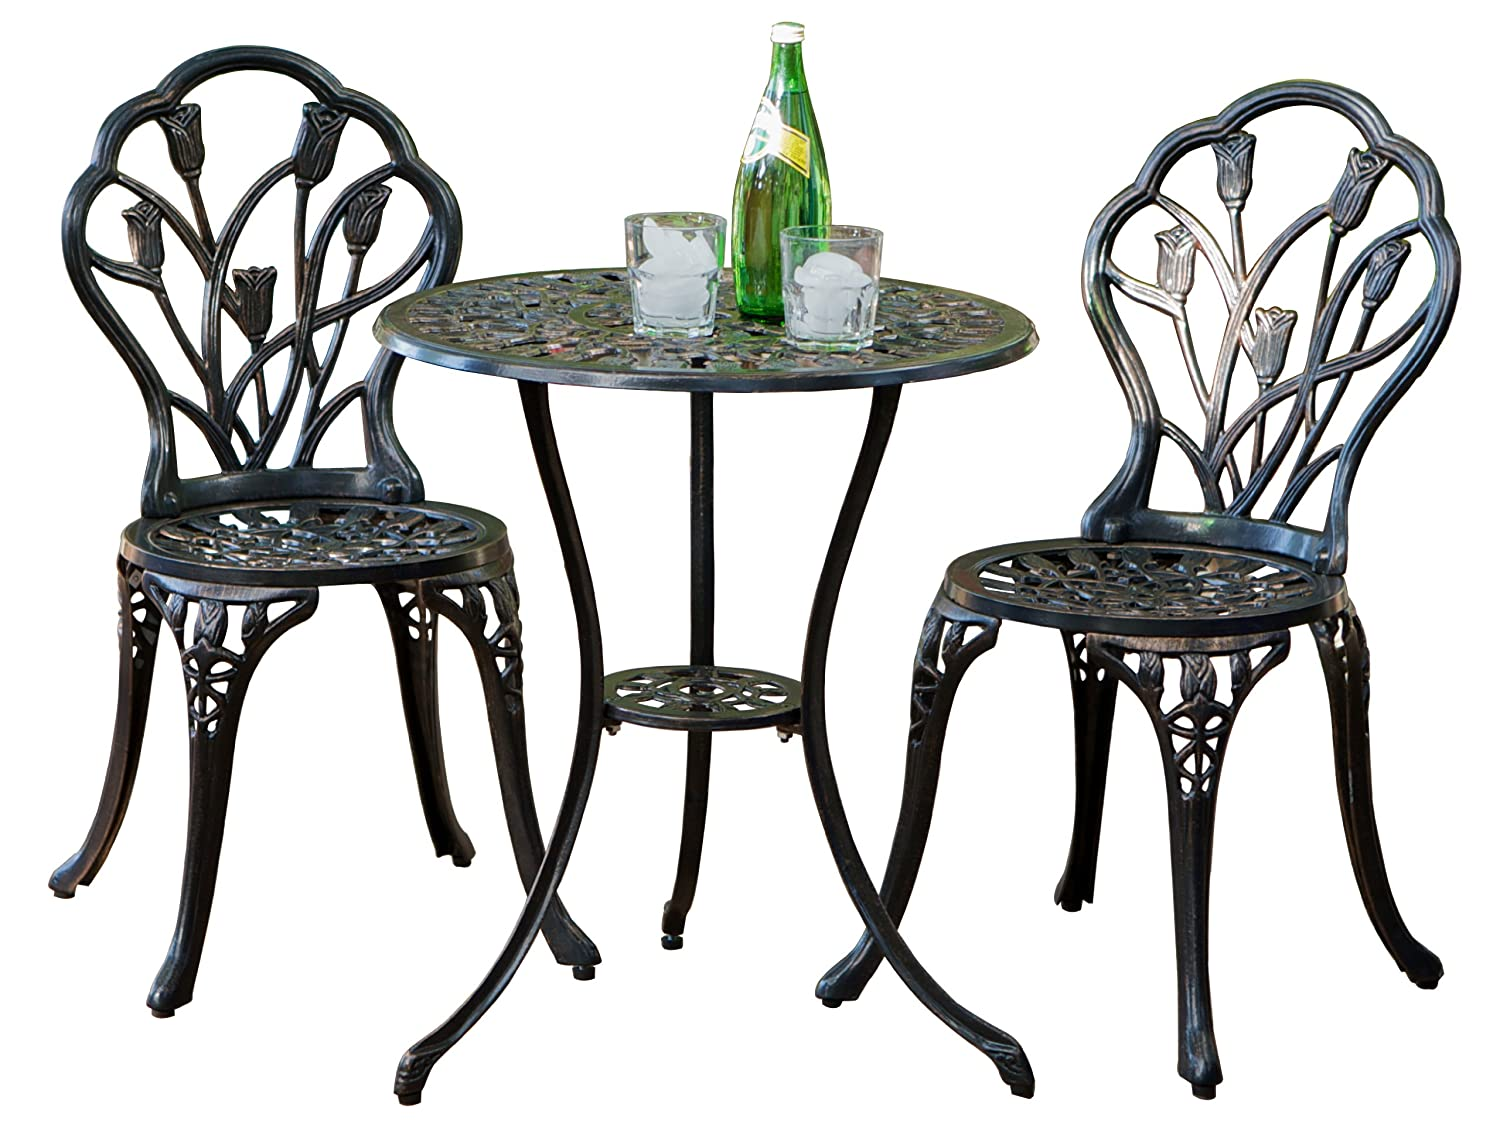 Amazon.com: Best-selling Nassau Cast Aluminum Outdoor Bistro ...